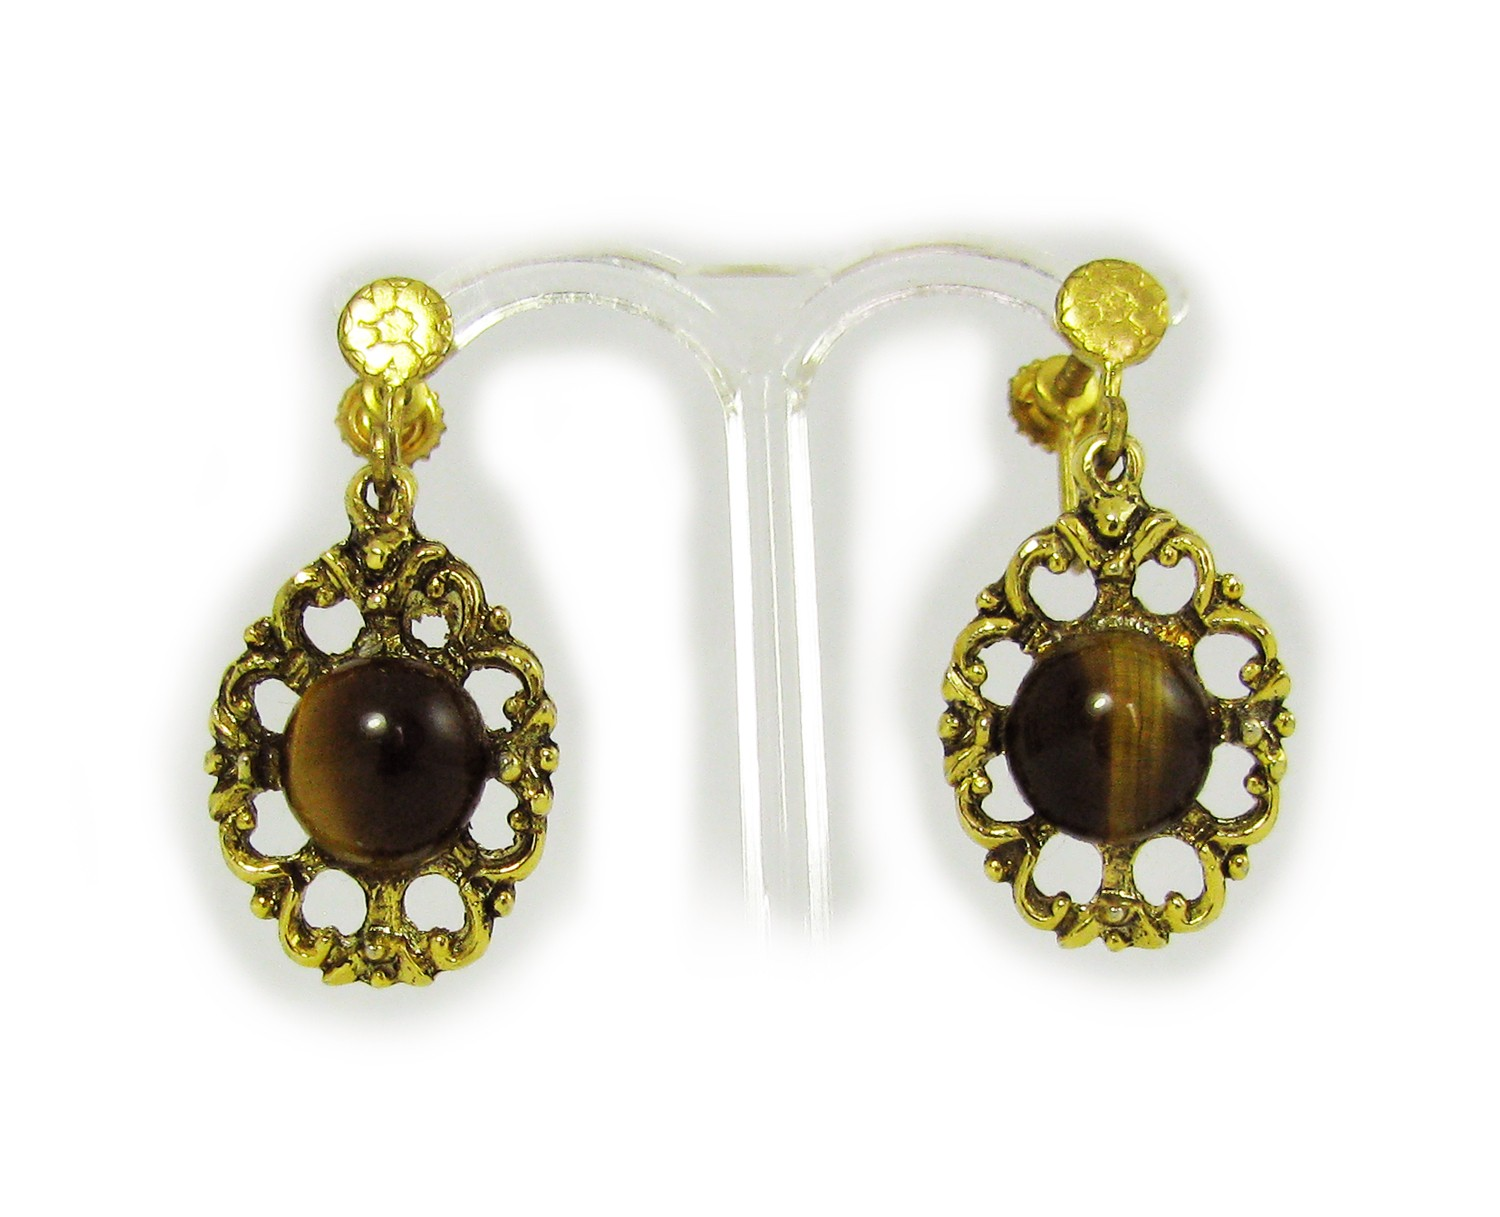 Screw Back Earrings http://v4vintage.com/index.php/vintage-jewellery/earrings/1950-s-baroque-tiger-eye-screw-back-earrings.html